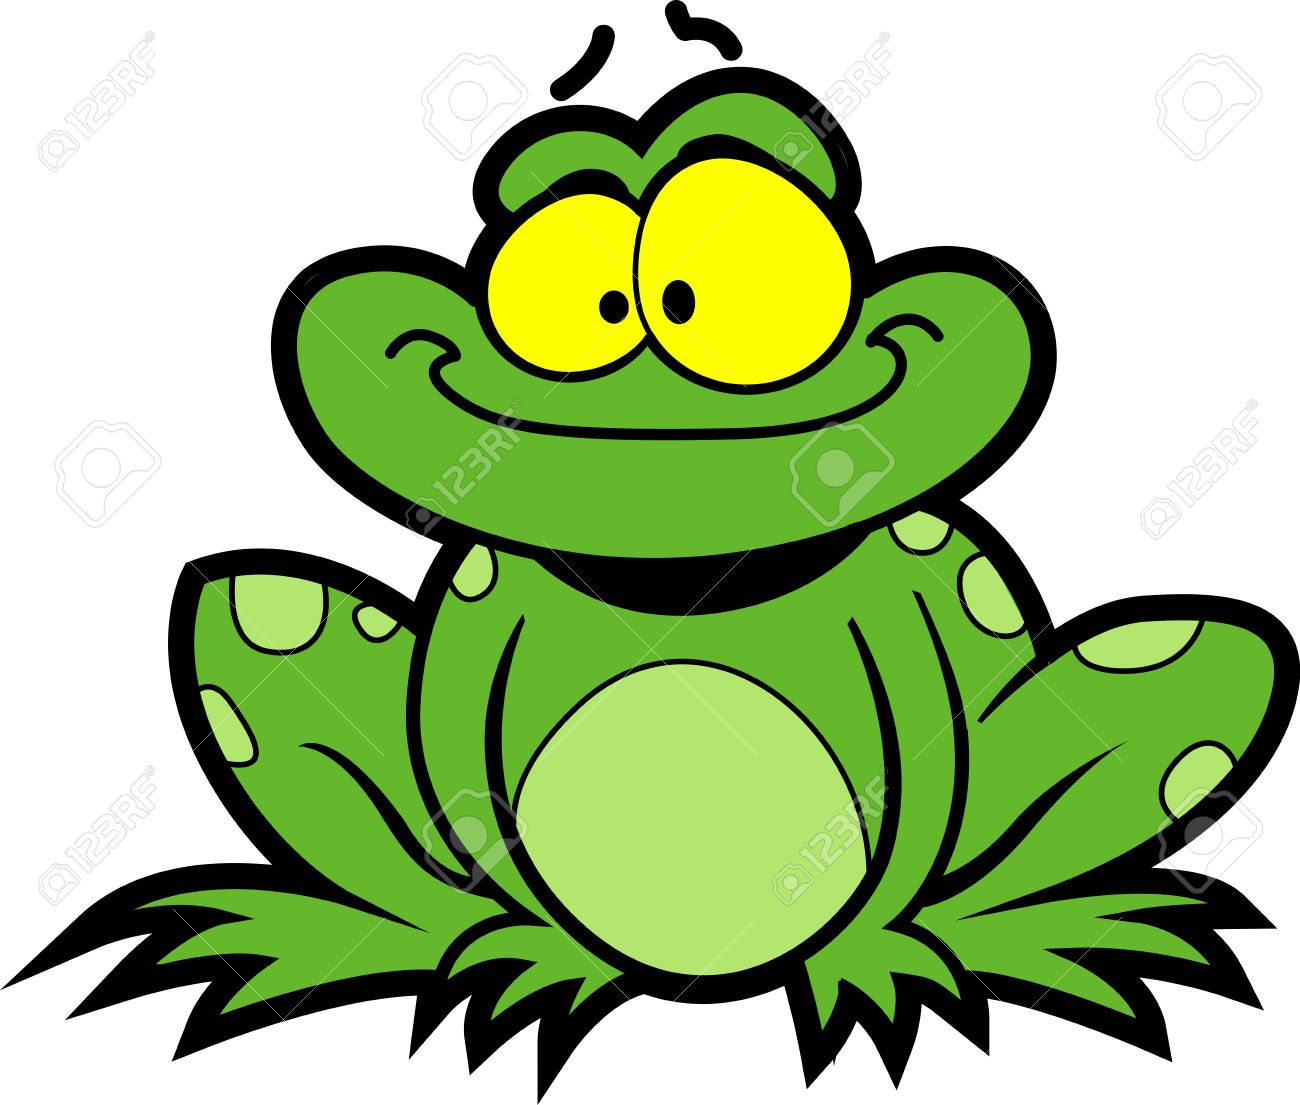 Happy Smiling Cartoon Frog Royalty Free Cliparts Vectors And Stock